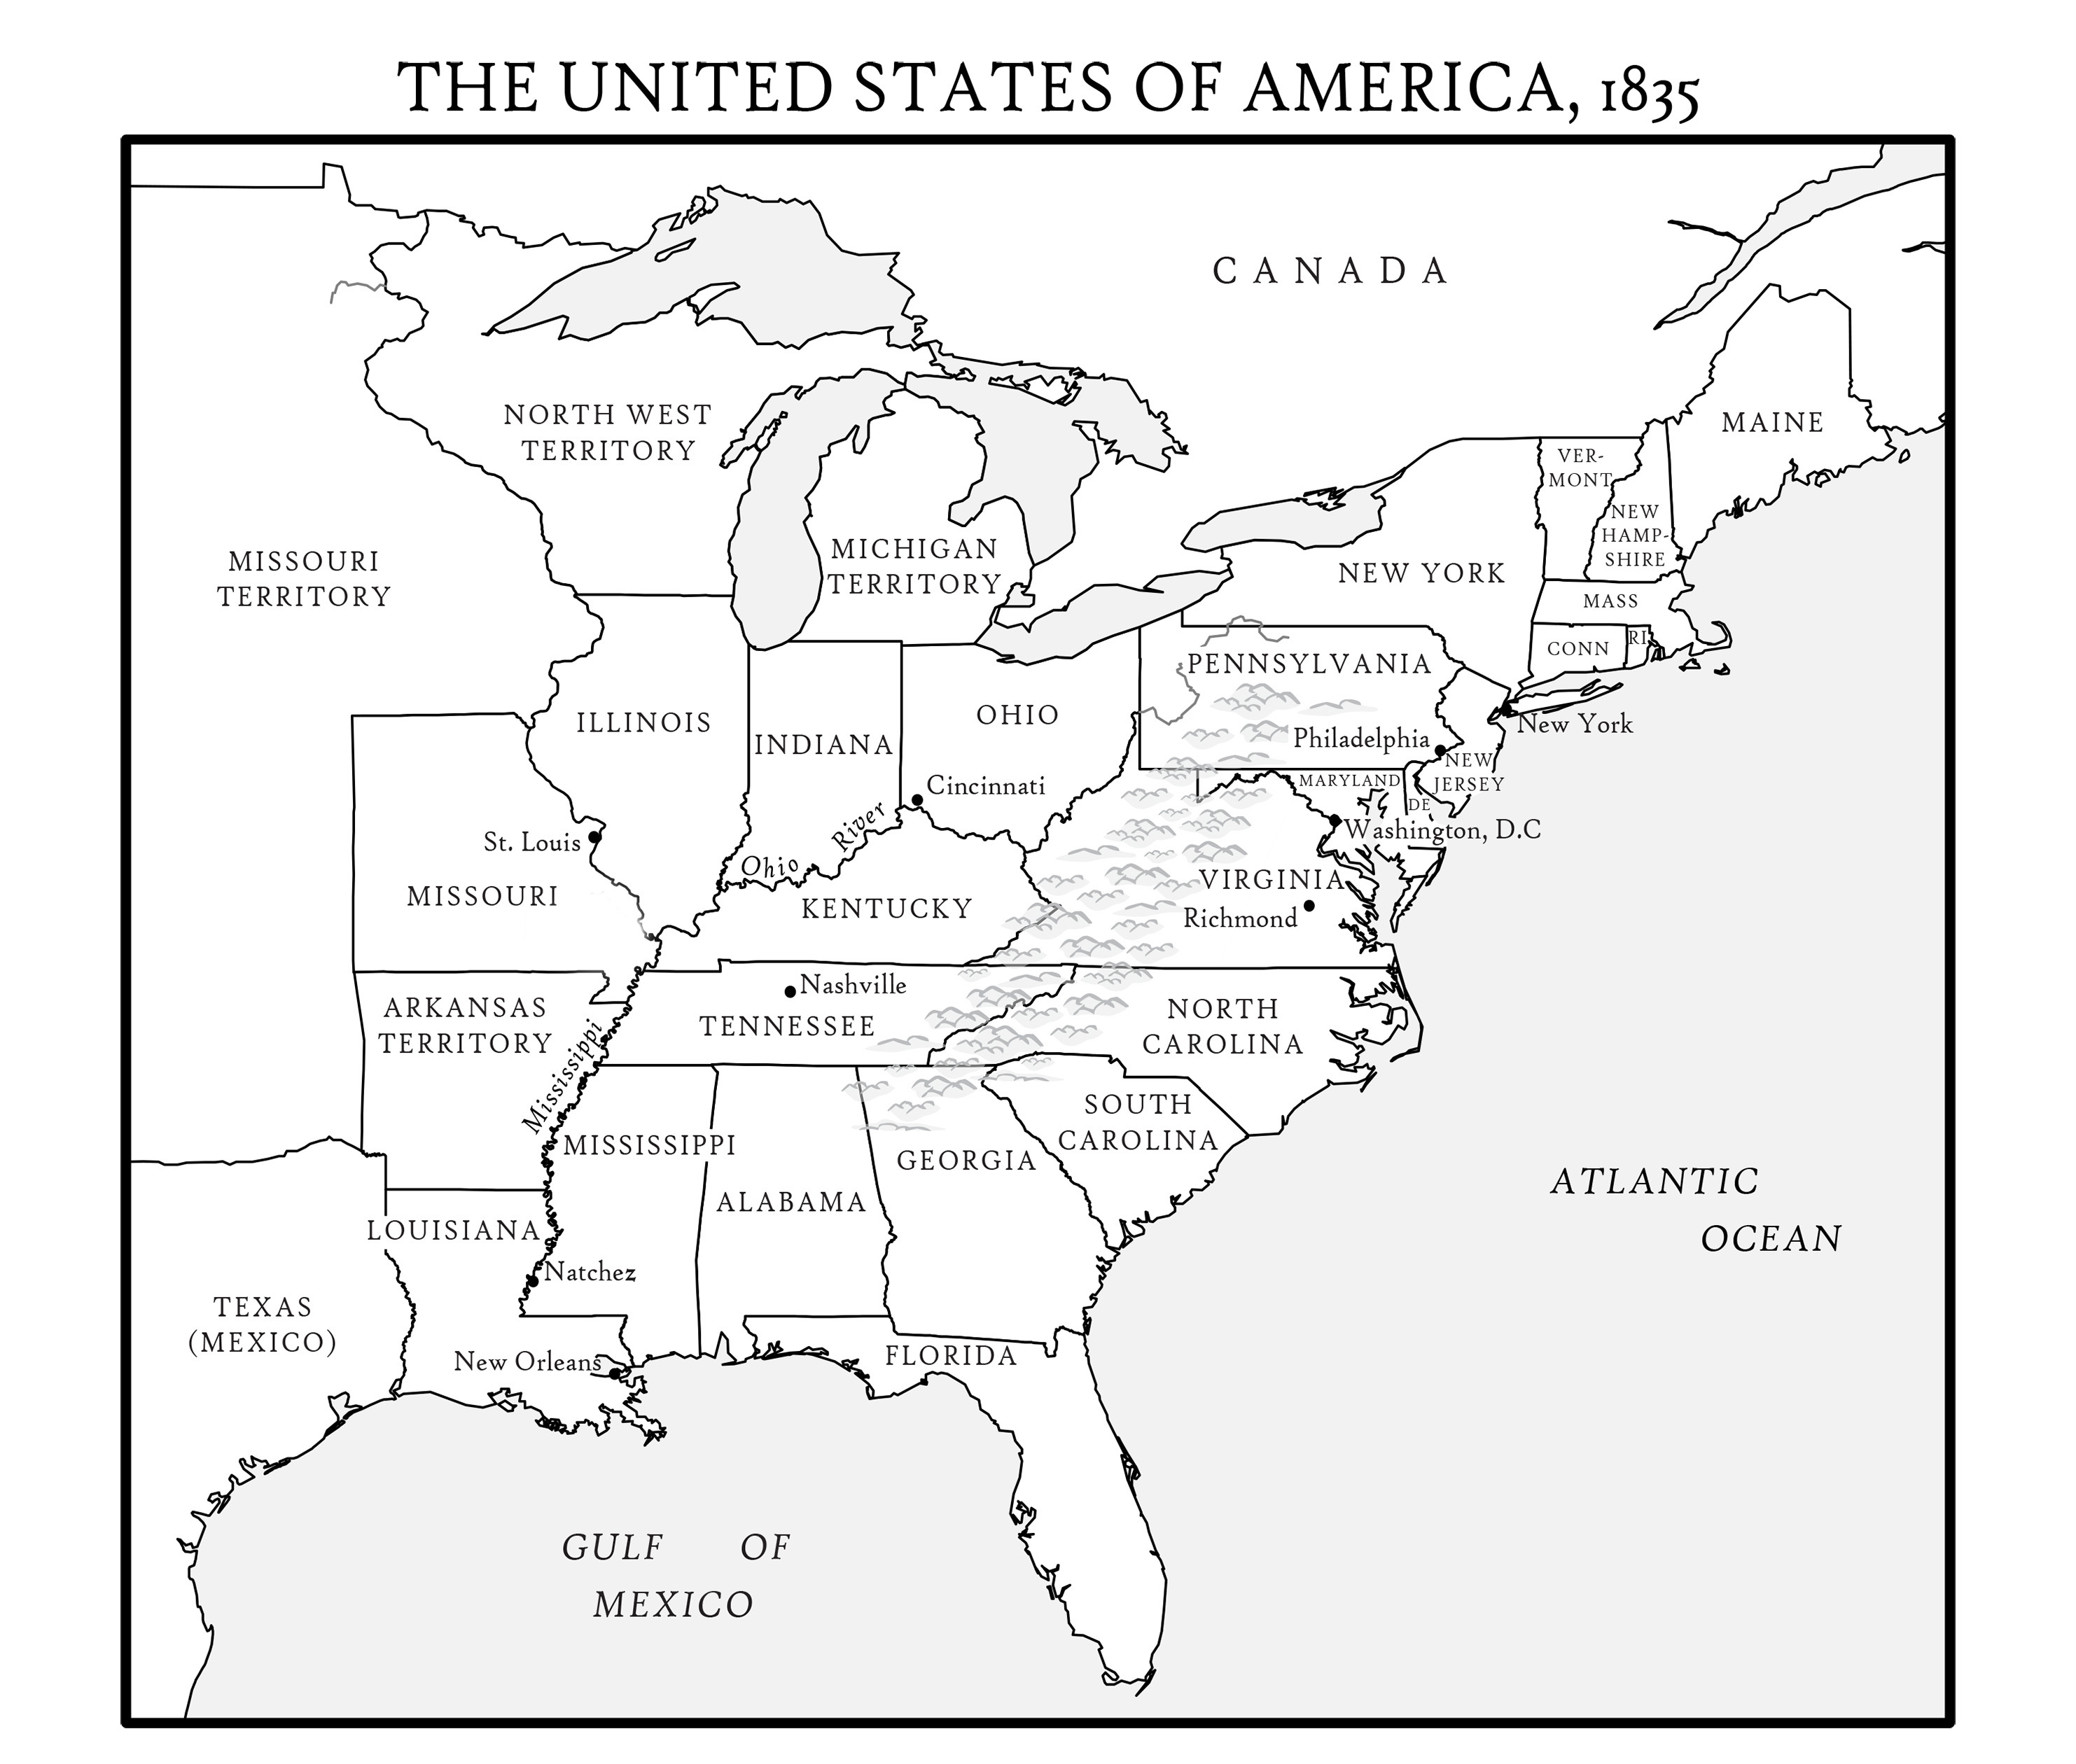 a history of alcoholism in united states of america The treatment of alcoholism has had a unique historical development in the united states this study provides a chronology of how the problem of alcoholism was defined and handled during various time periods in united states history.